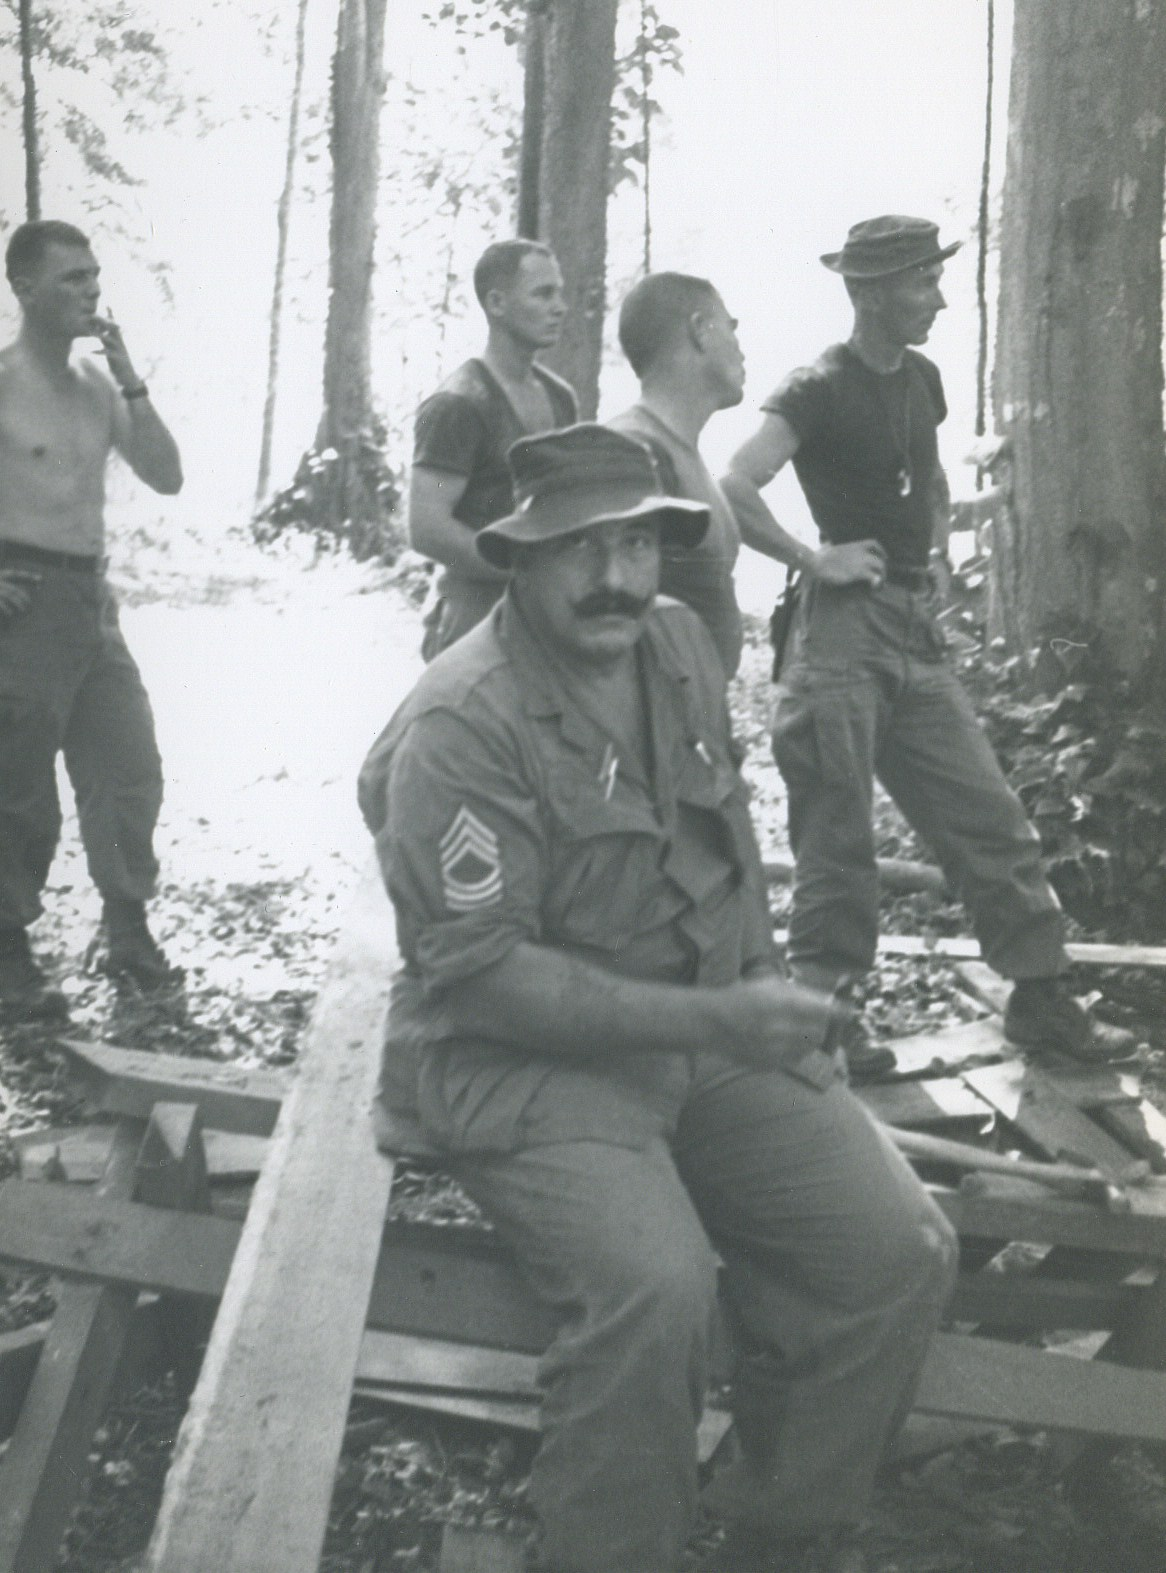 MSG Moose Brannon Back Row, SGT Helms, SGT Lonny Holmes, CPT Greenwood, SFC Forrest - K Formam Building Camp Carroll Trang South Thailand 1966 - A 432